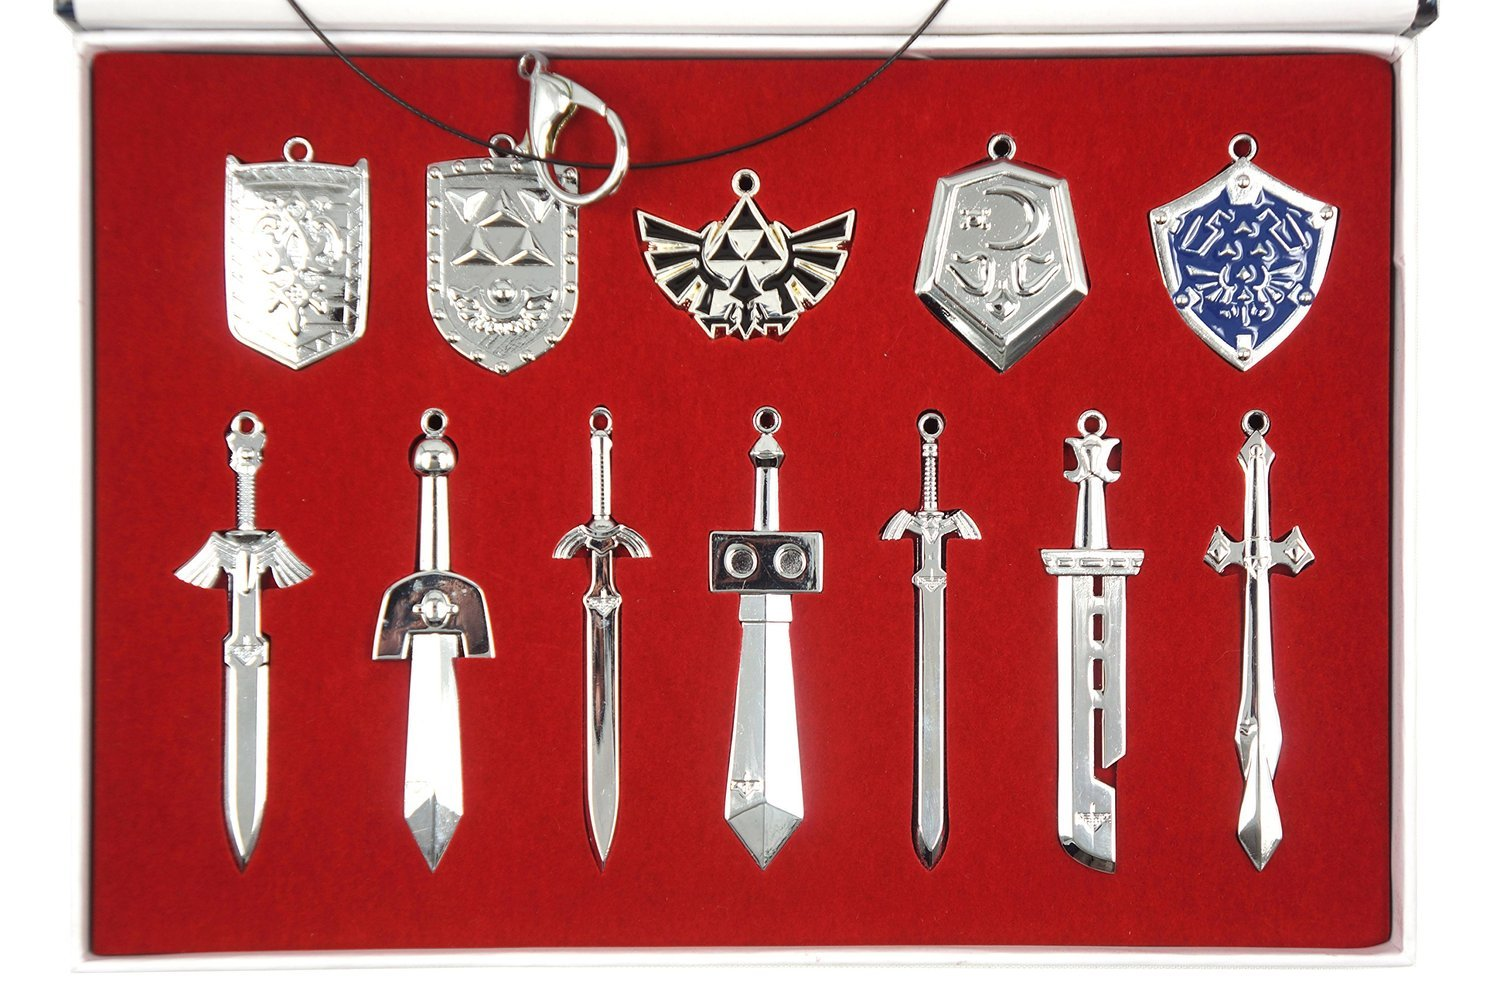 Zelda Triforce Shield & Sword Keychain Necklace Collection Box 2014 Set of 12